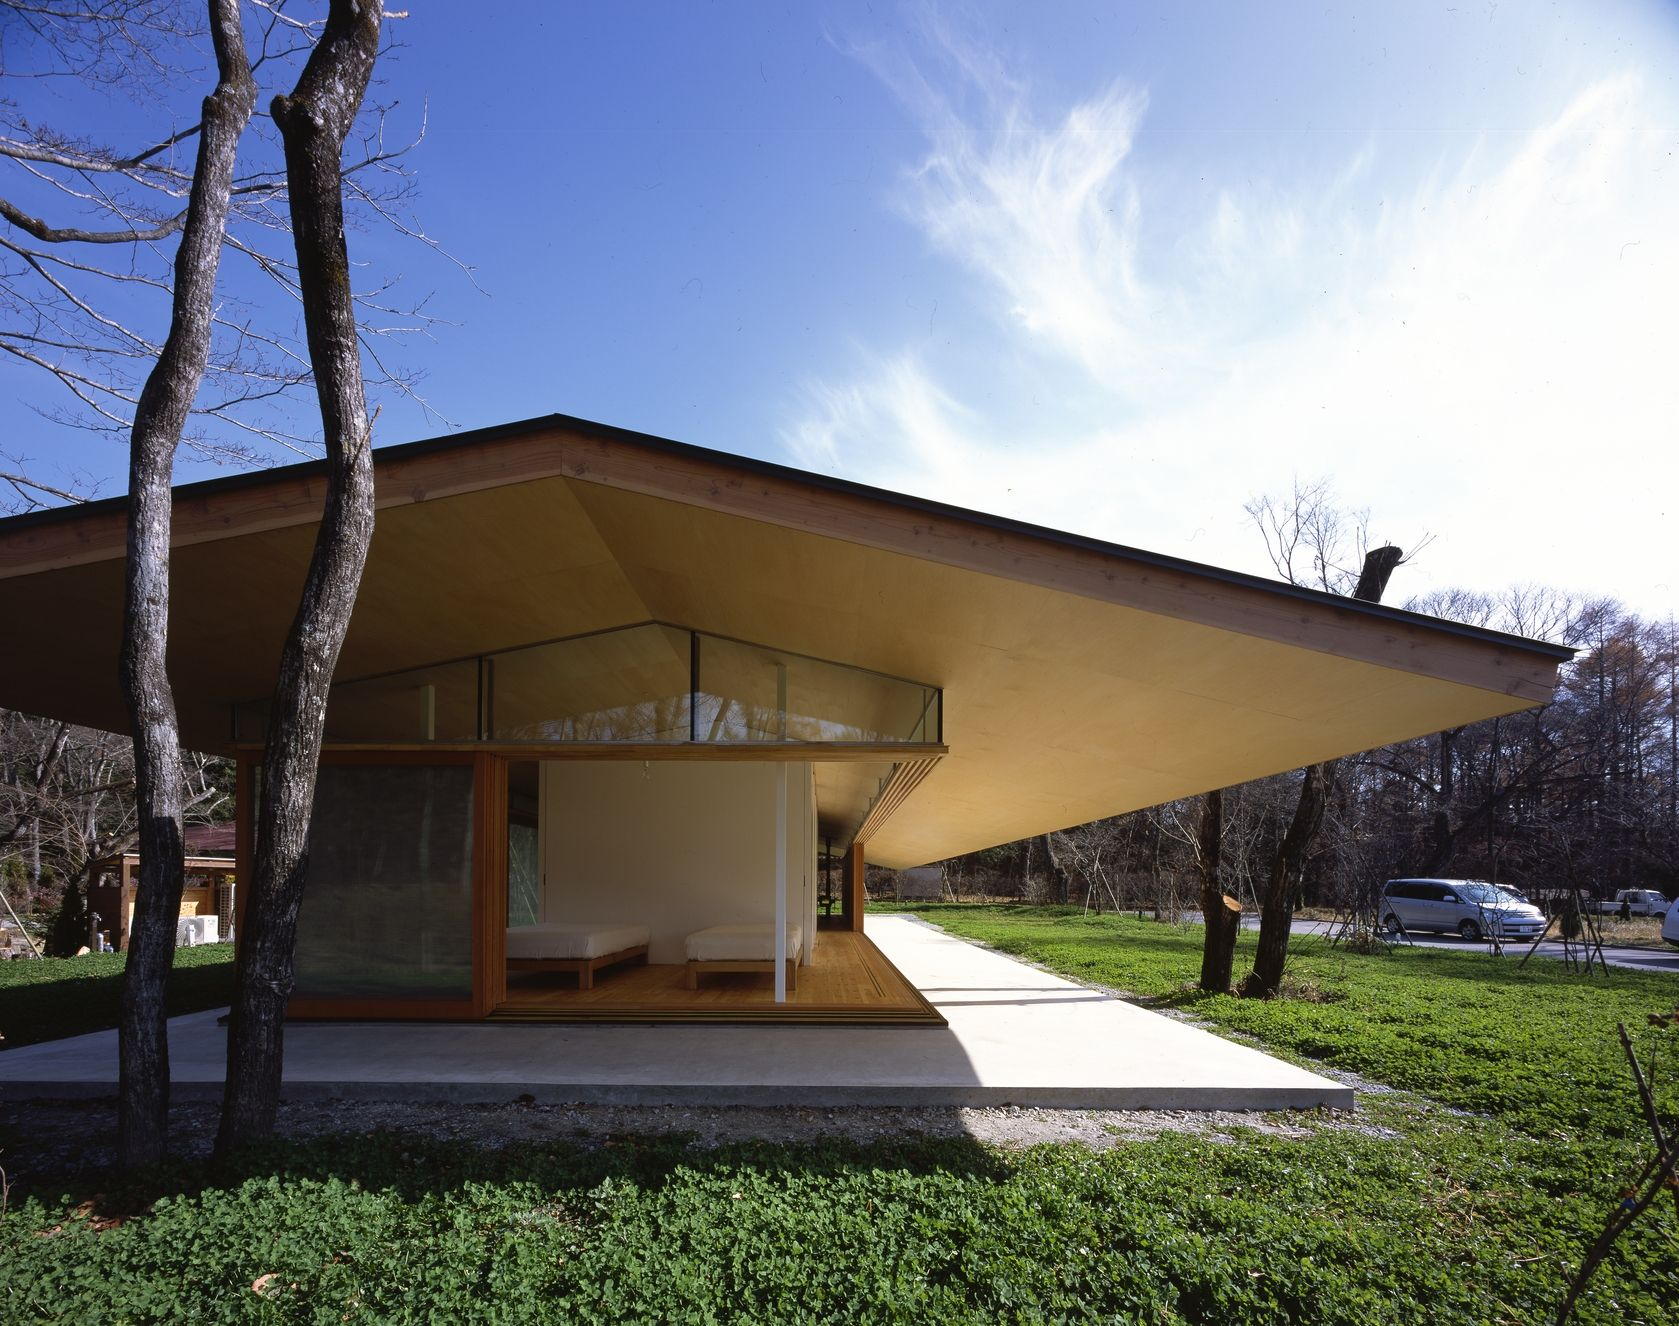 Pitched Roof House - Explore, Collect and Source architecture